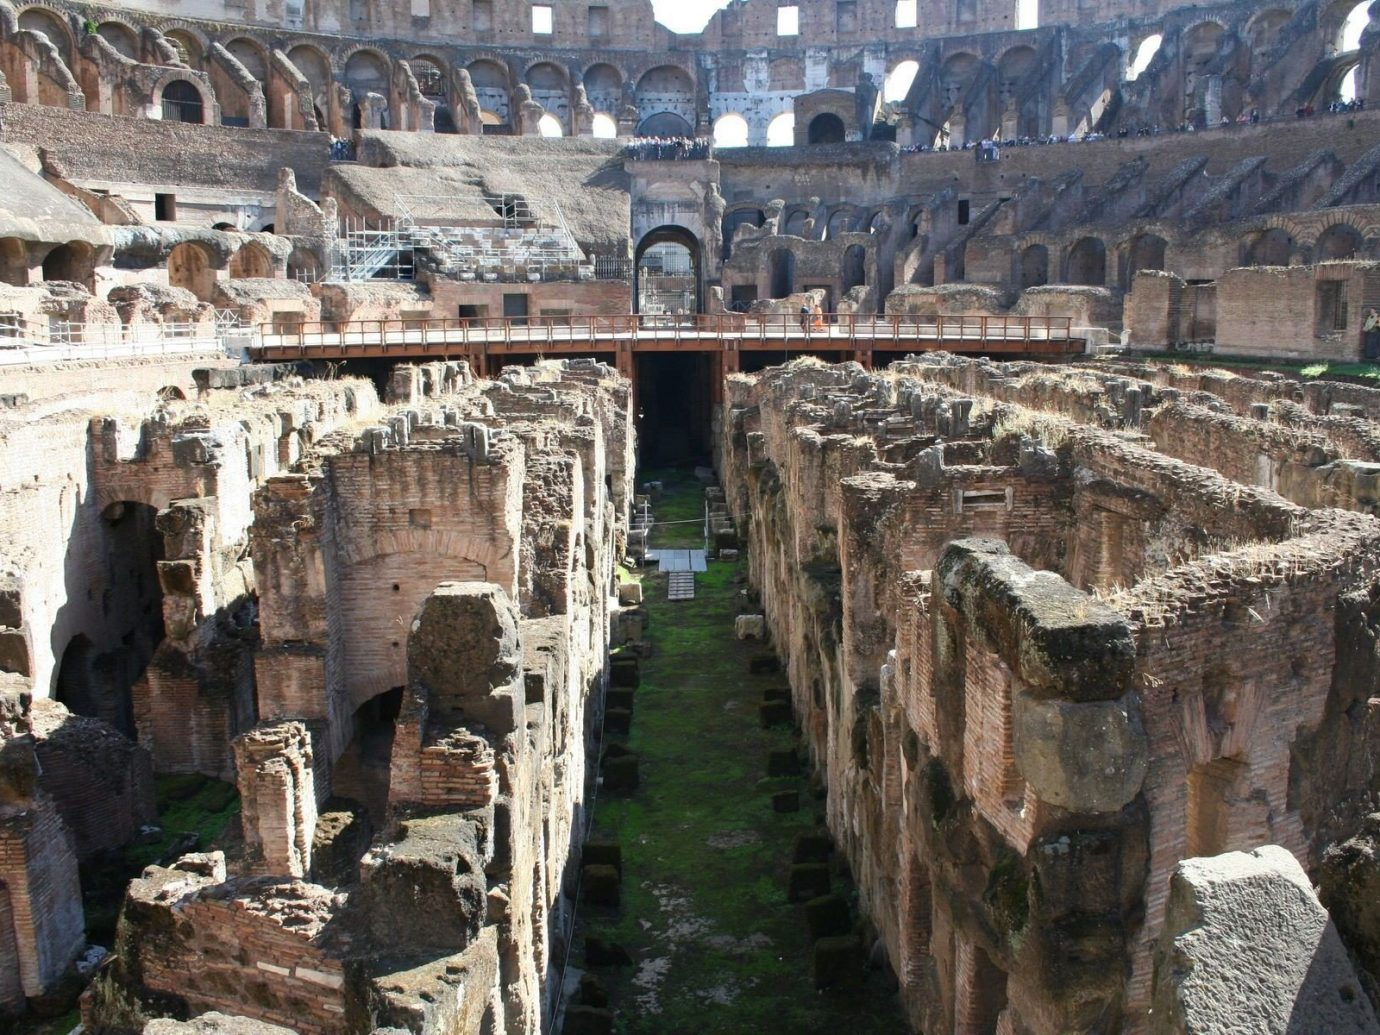 Trip Ideas building outdoor structure ancient rome landmark ancient history human settlement Ruins ancient roman architecture amphitheatre old arch stone